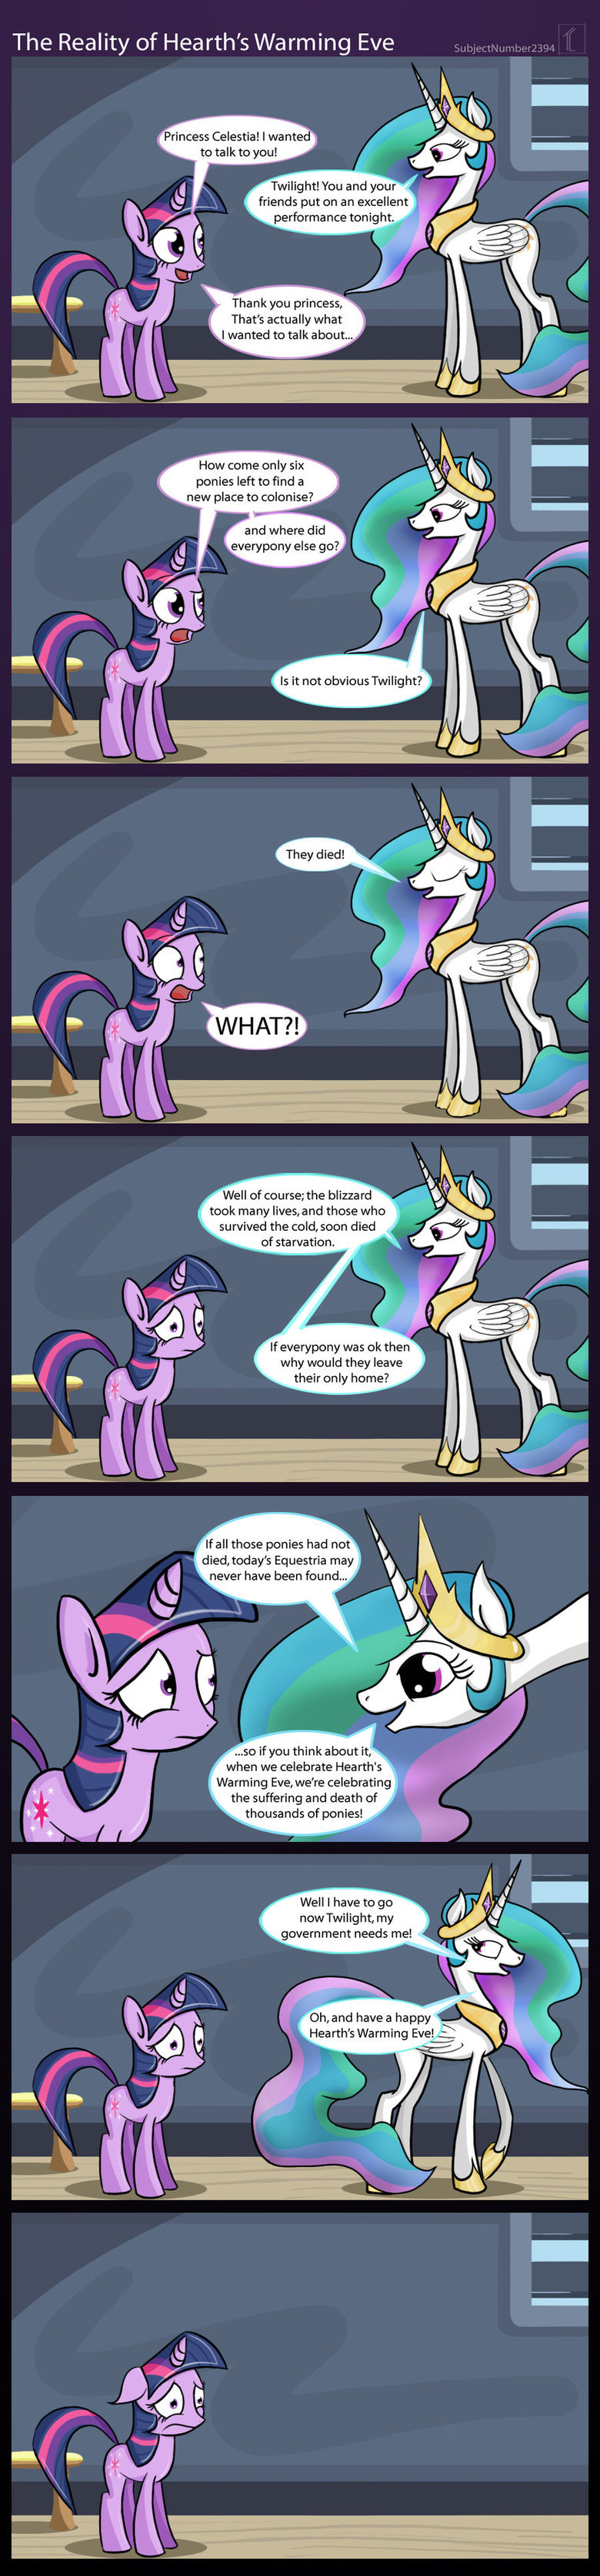 The true meaning of Hearth's Warming Eve. www.equestriadaily.com. The Reality of Heath' s Warming Eve , Princess Celestial I wanted to talk to you! Twilight! Yo